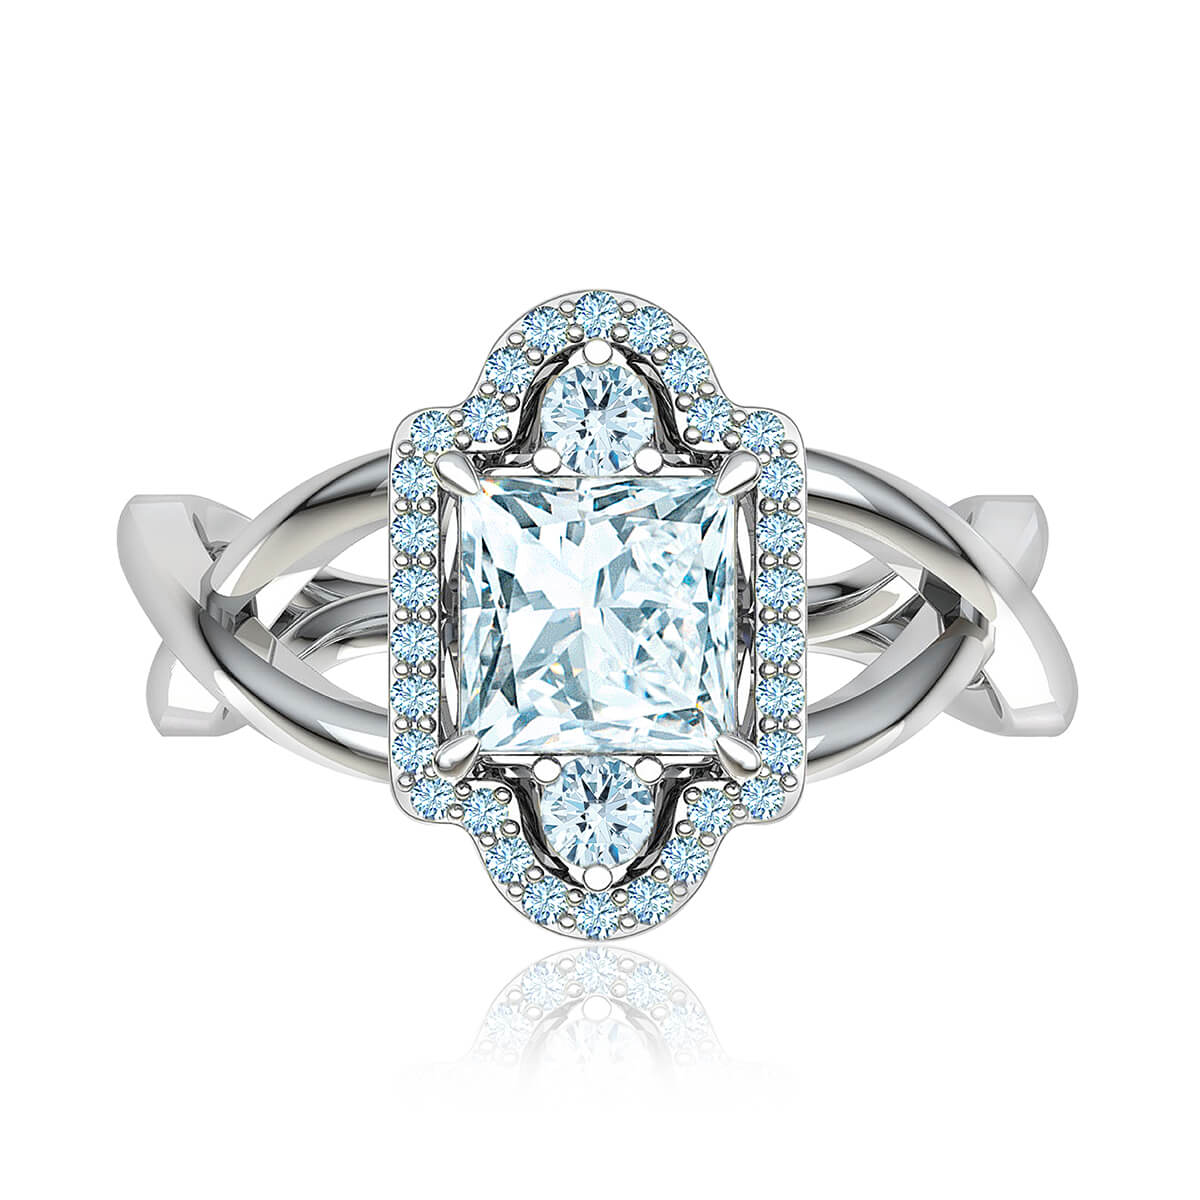 Arjaene Diamond Ring